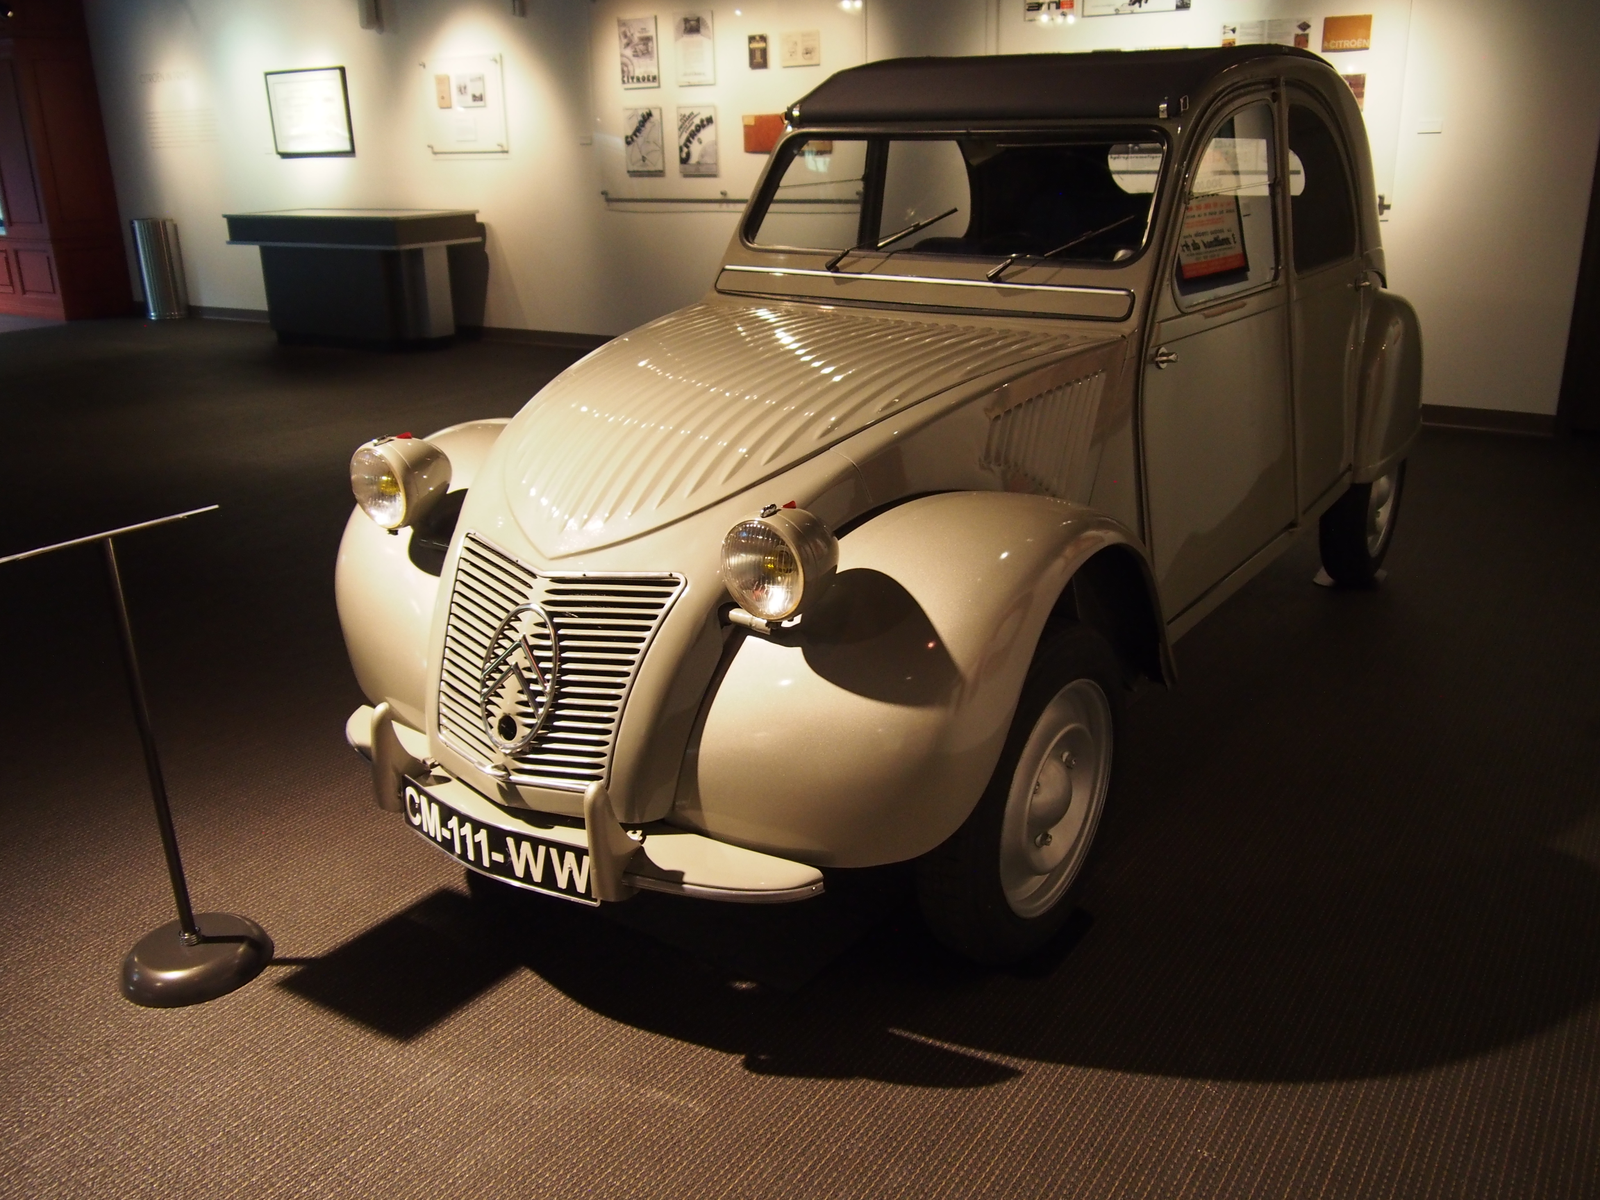 A beautifully restored 1952 Citroën 2CV with its distinctive early ripple bonnet.